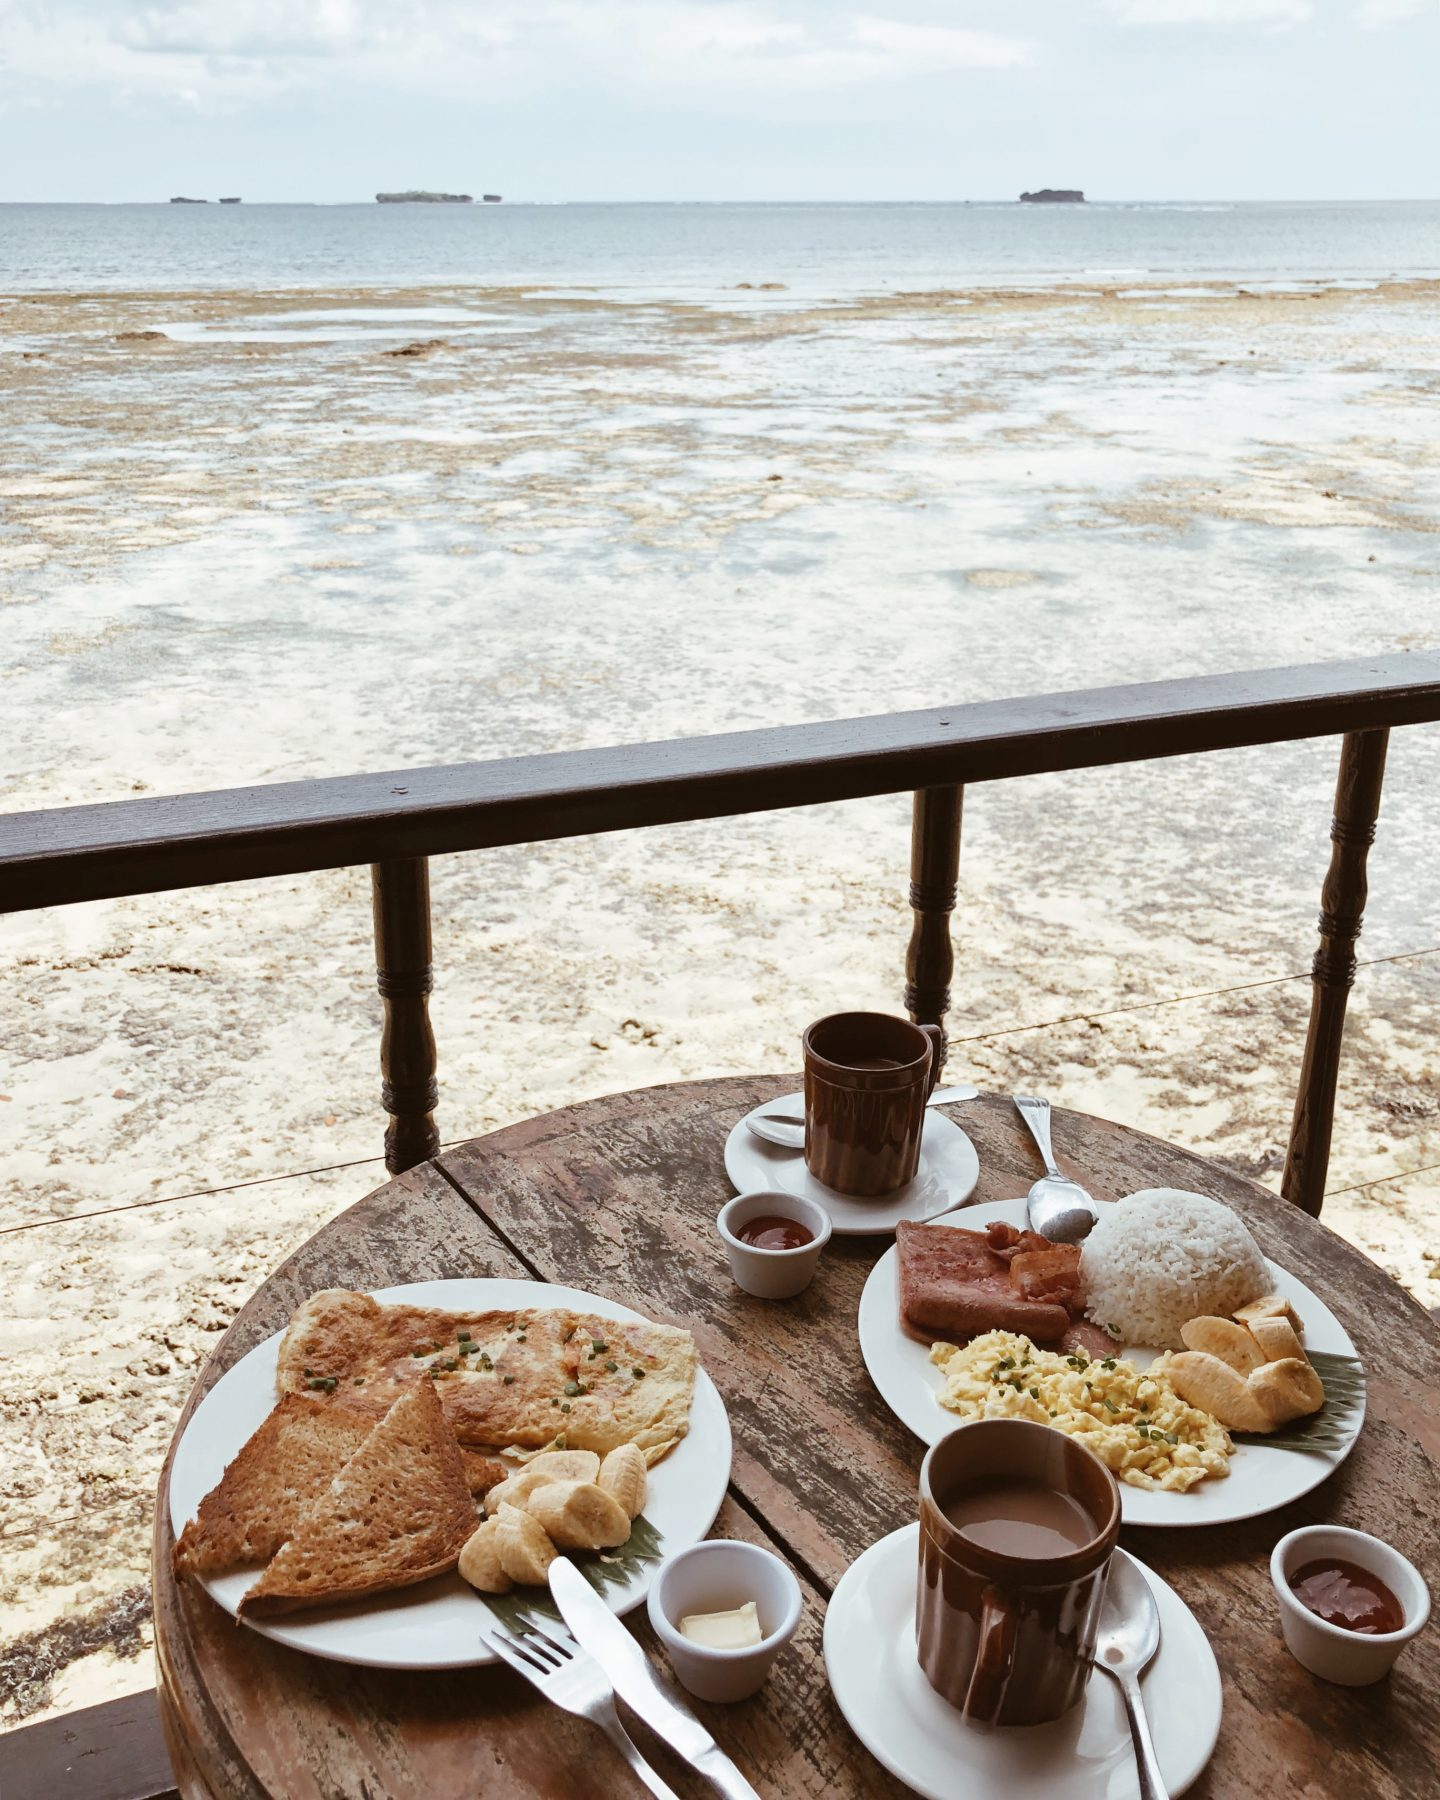 breakfast with view in siargao